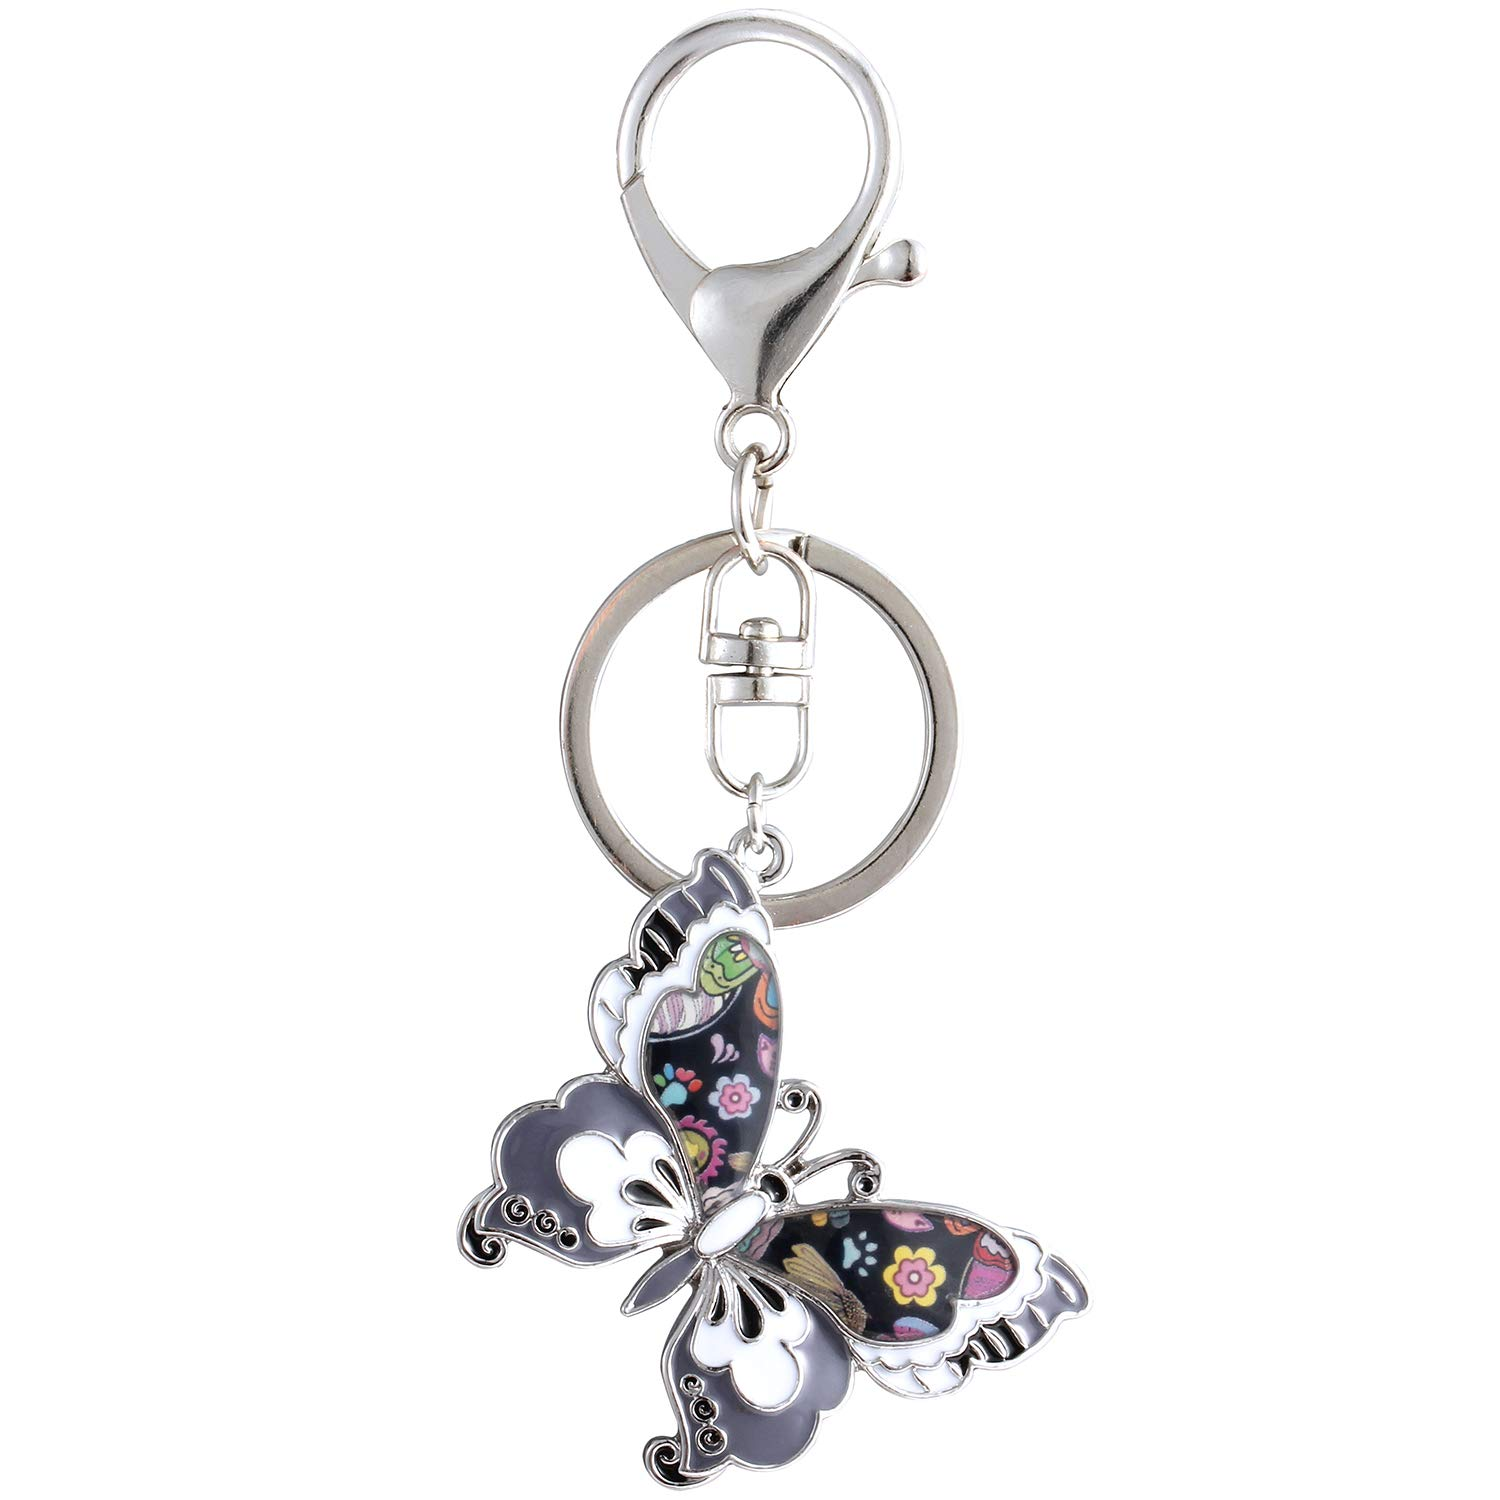 Luckeyui Personalized Butterfly Keychain Gifts for Women Black Enamel Insect Charm Keyrings